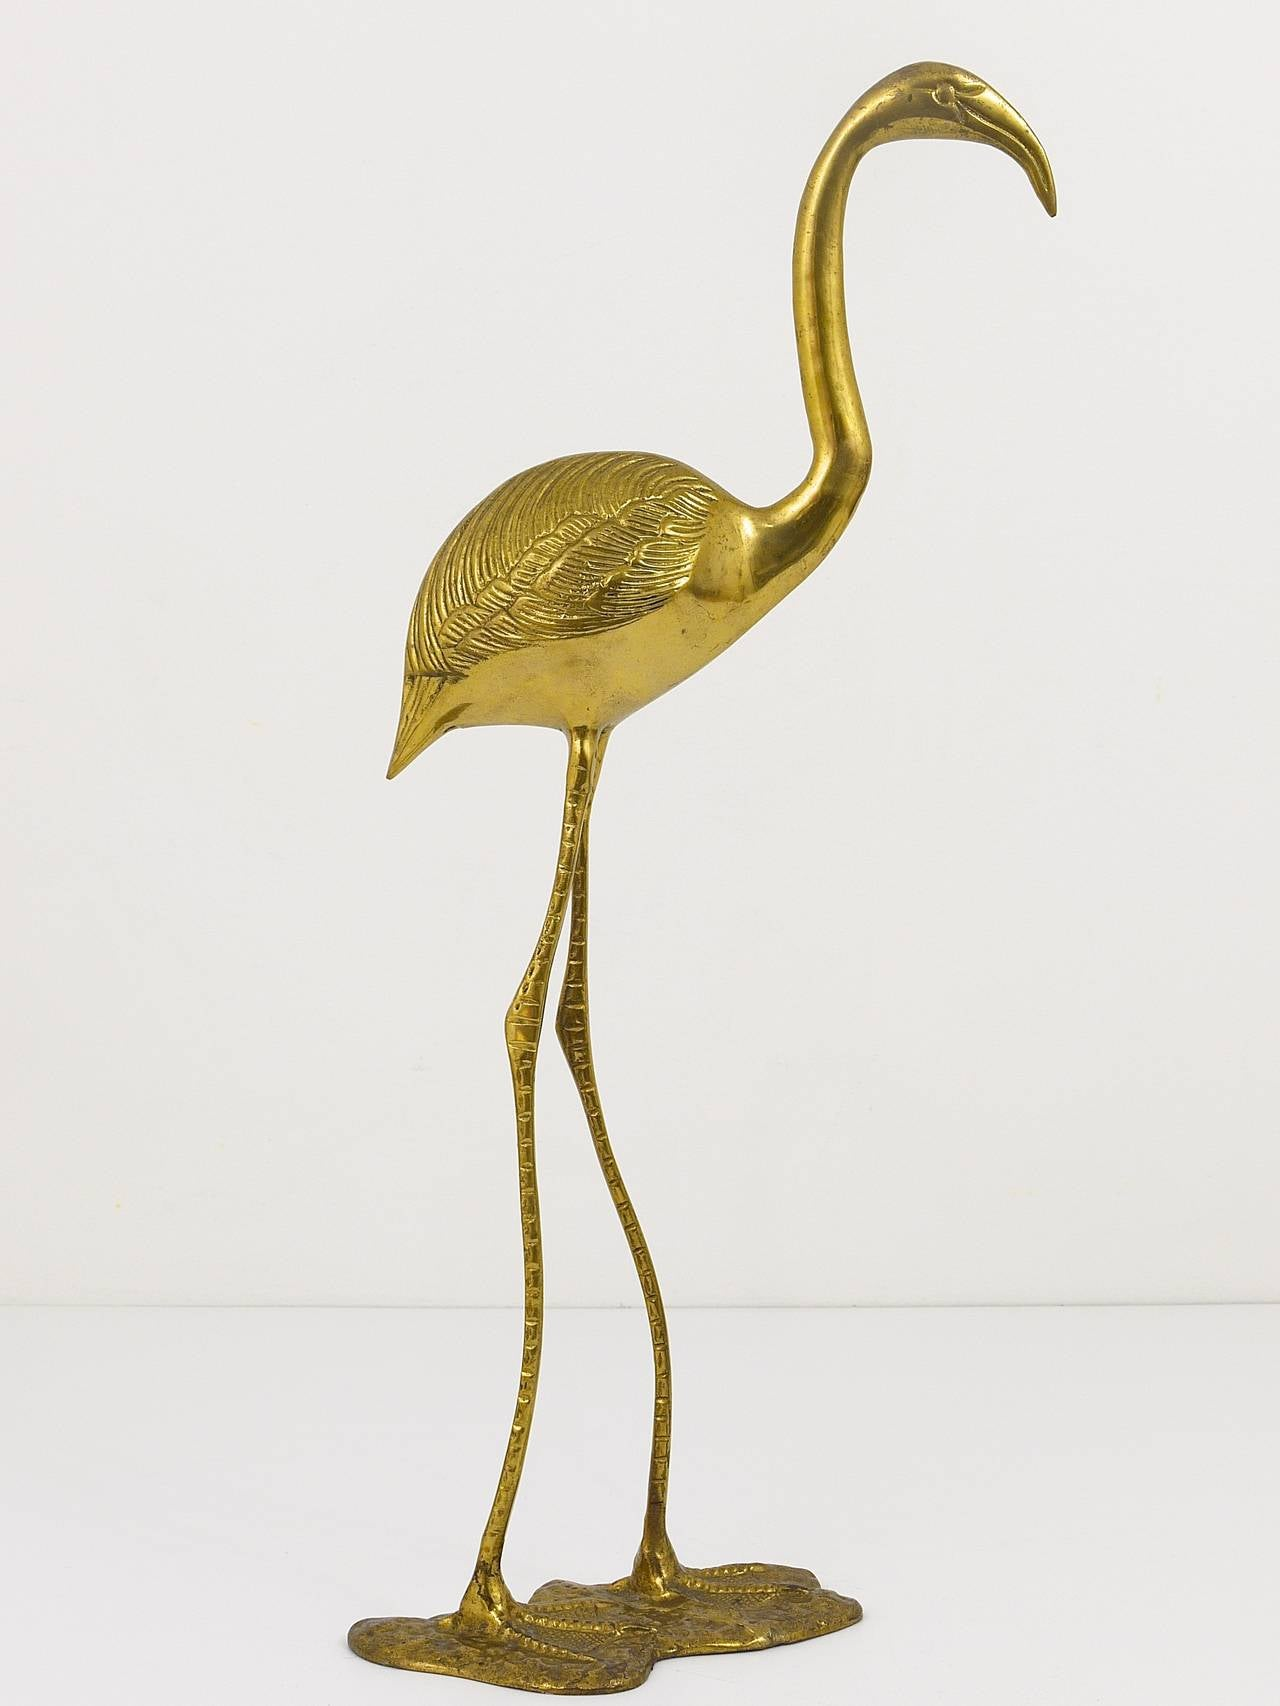 A Beautiful Pair Of French Brass Flamingo Sculptures, 1970s, France 6